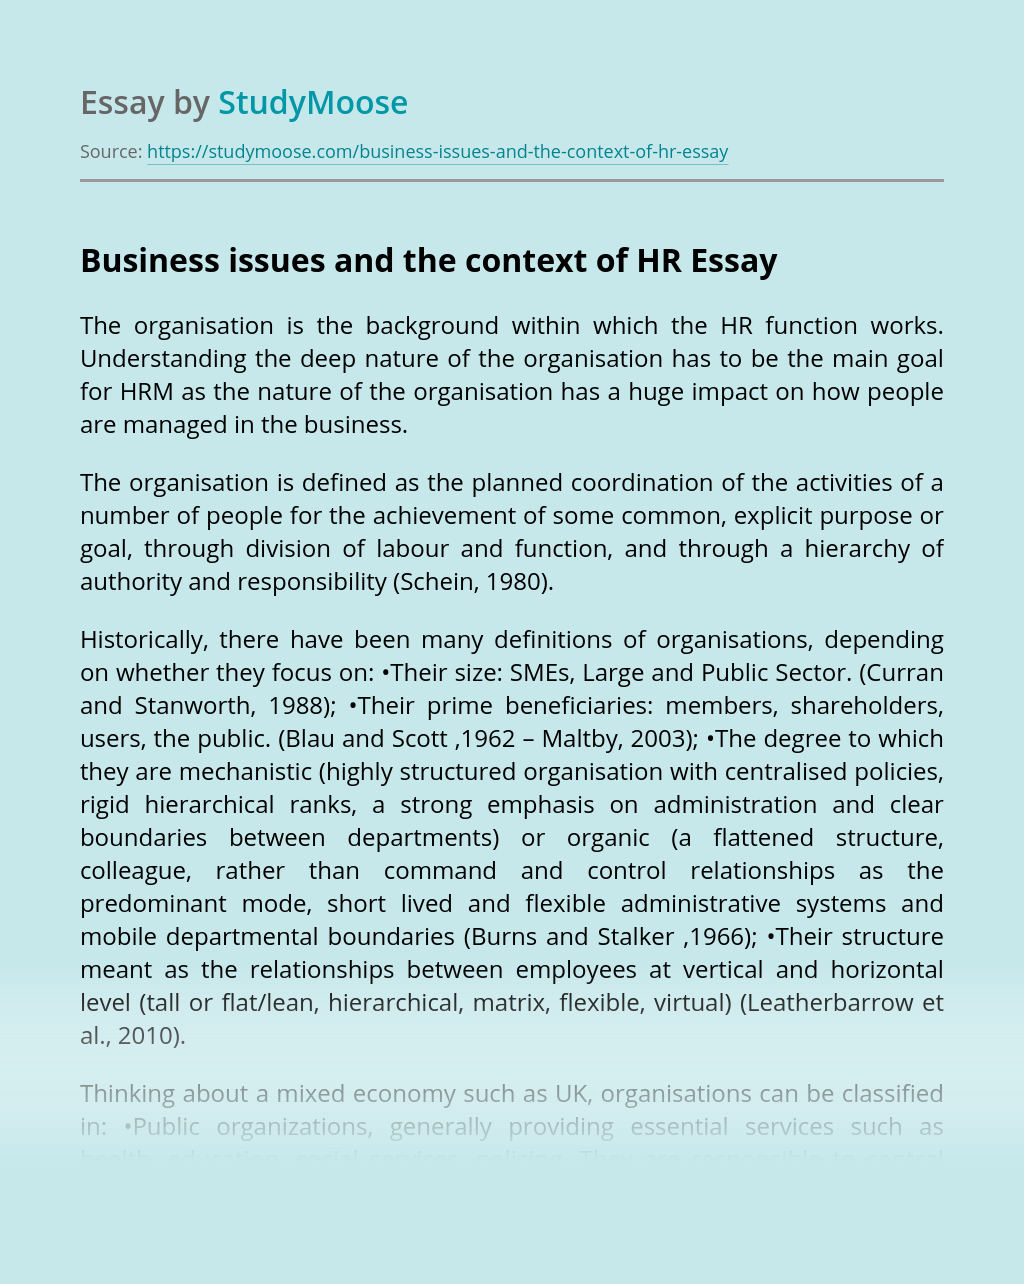 Business issues and the context of HR